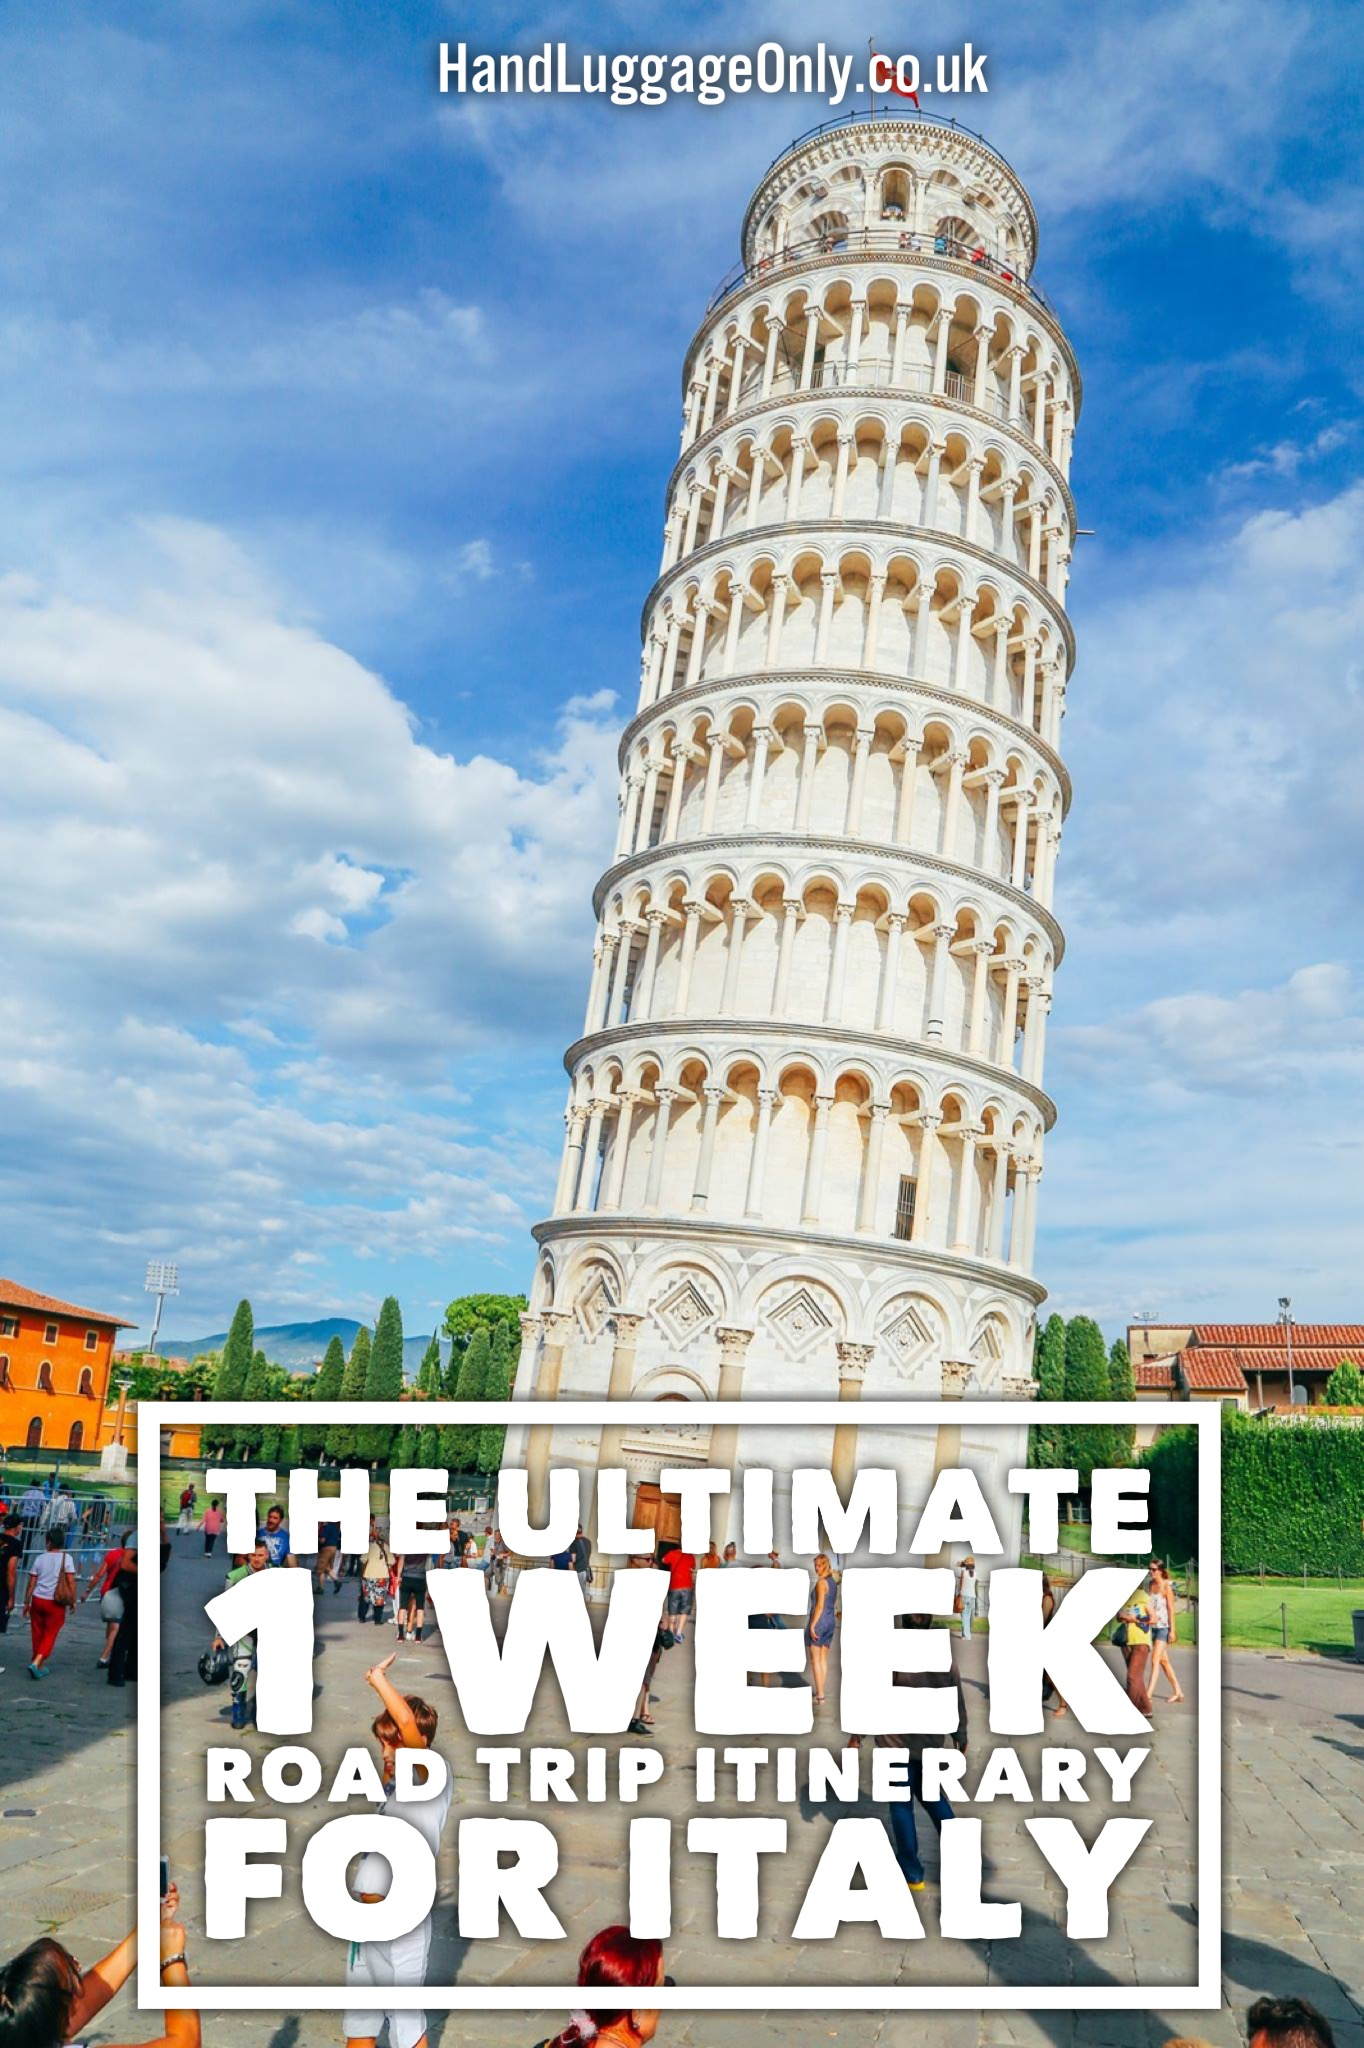 A 1 WEEK ROAD TRIP ITINERARY FOR ITALY